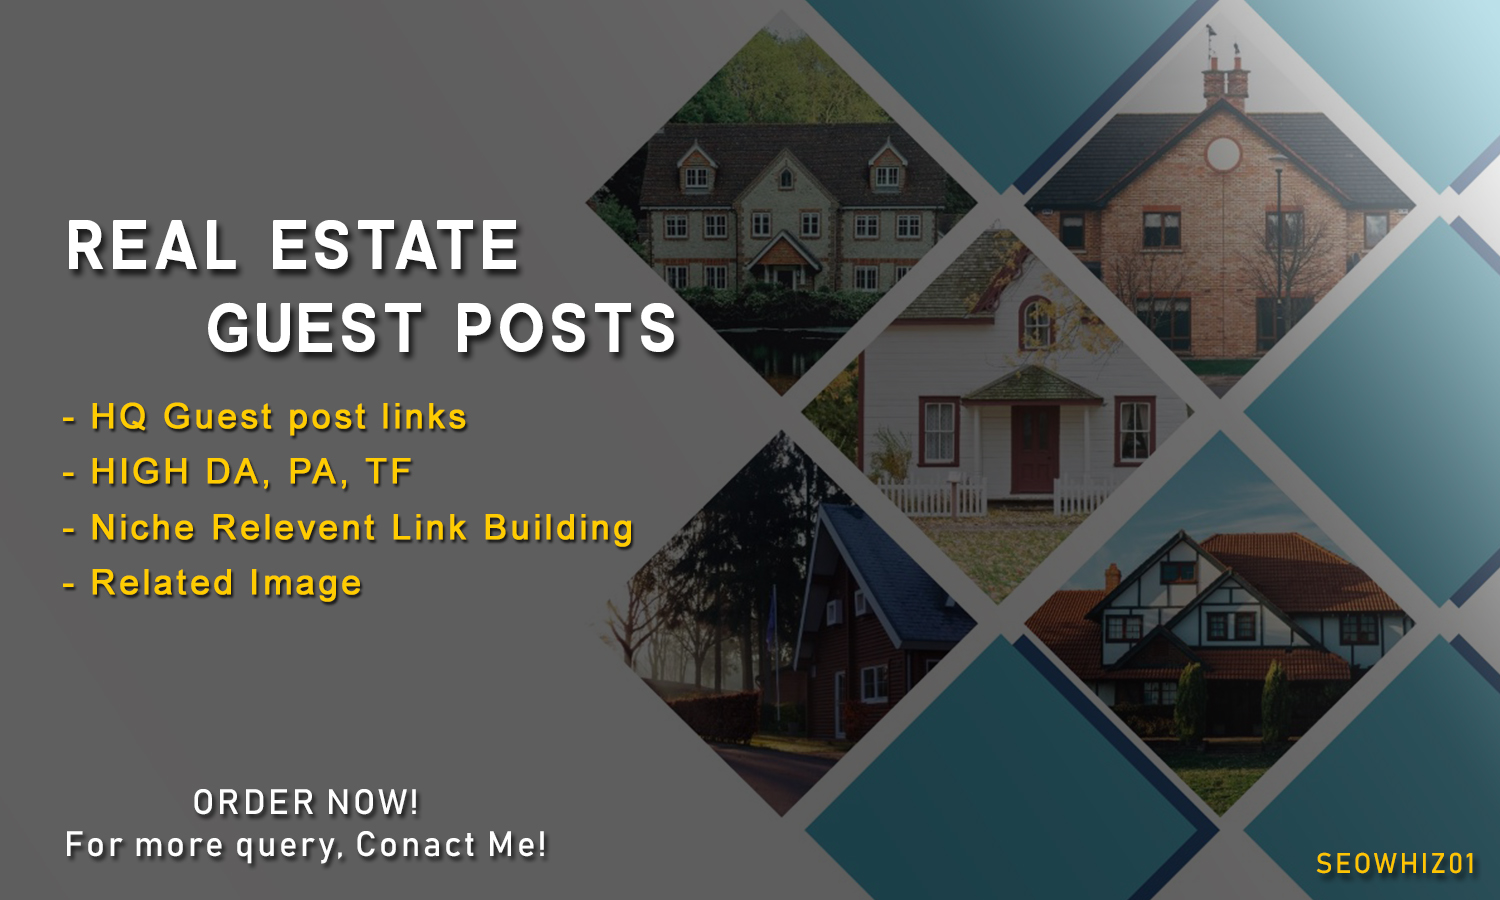 Write and Publish 1 Guest Post on Real Estate Website